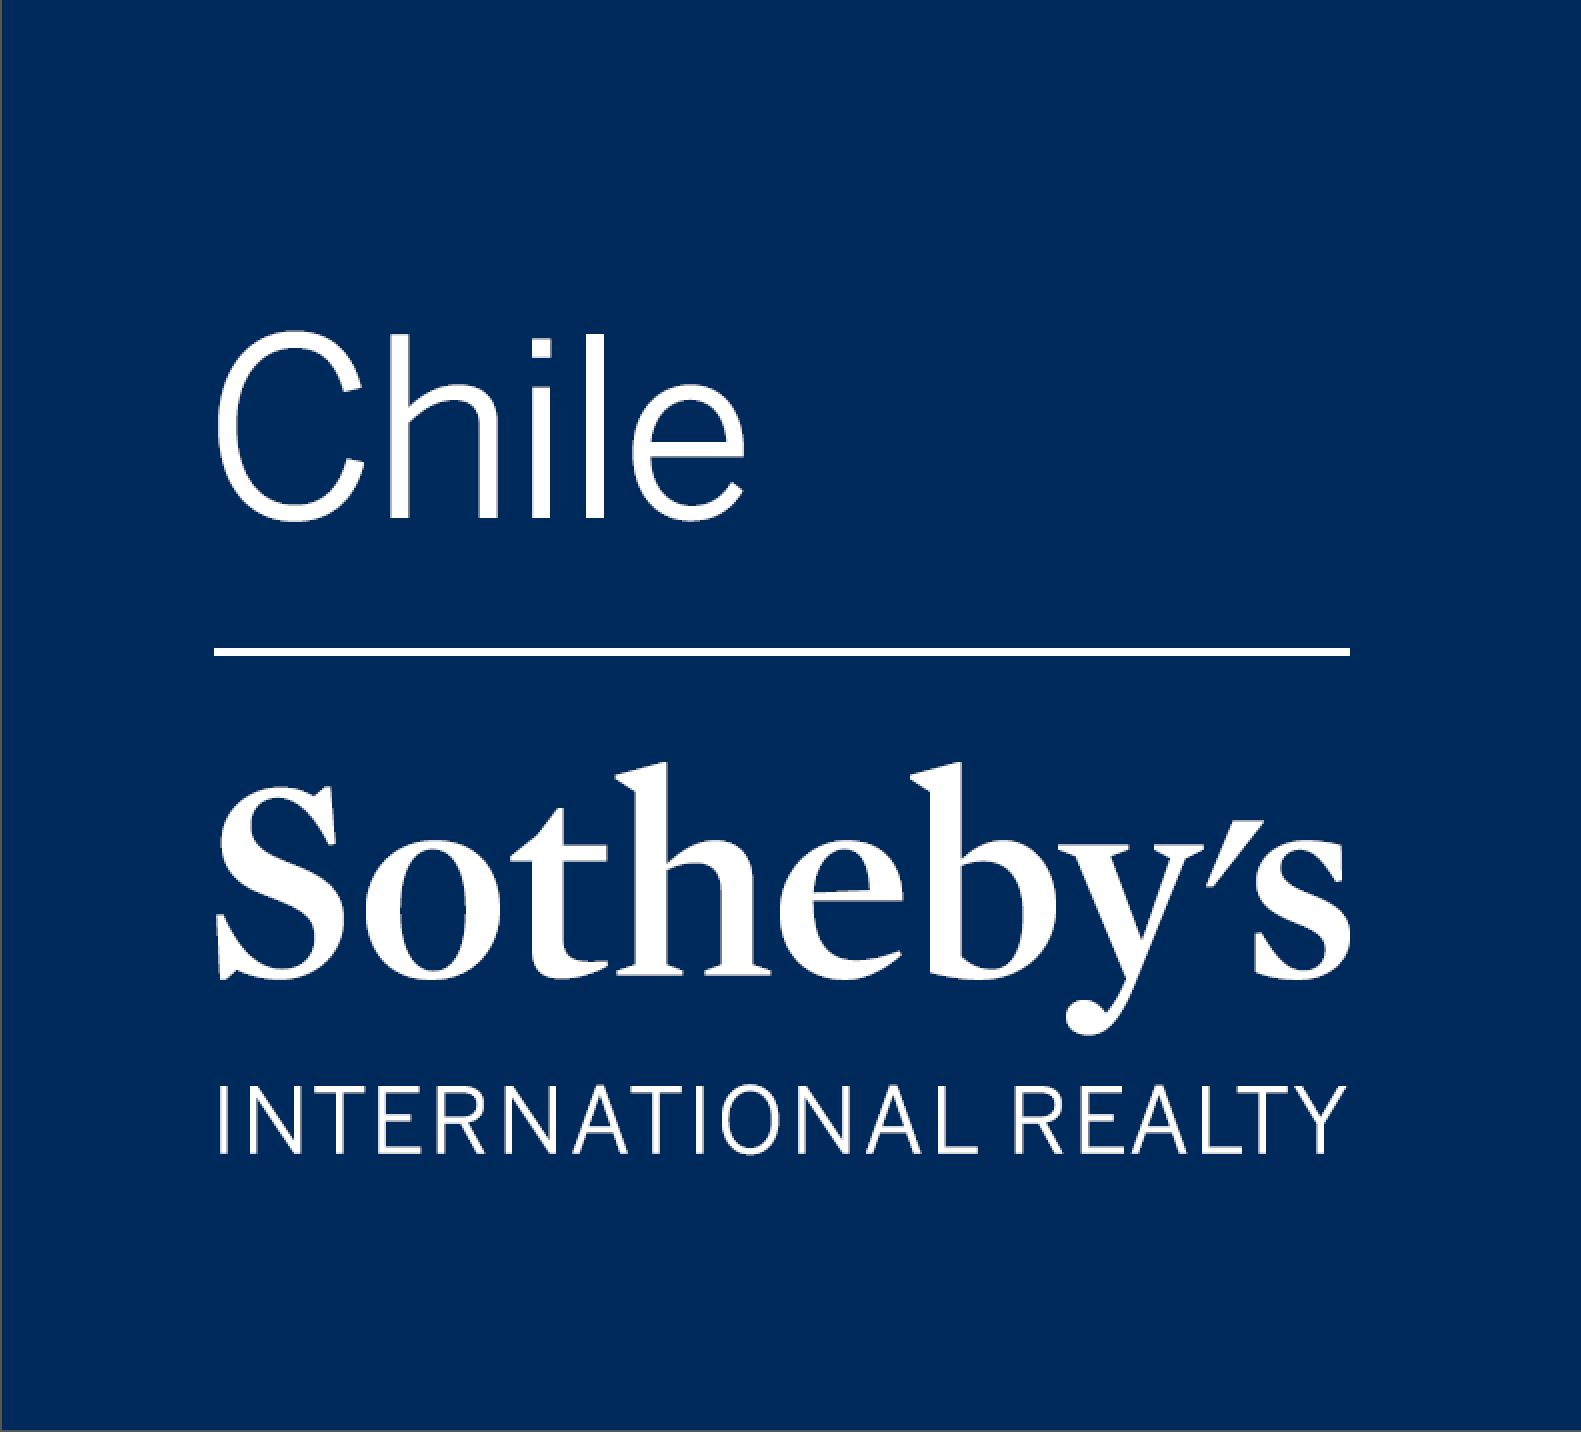 Chile Sotheby's International Realty